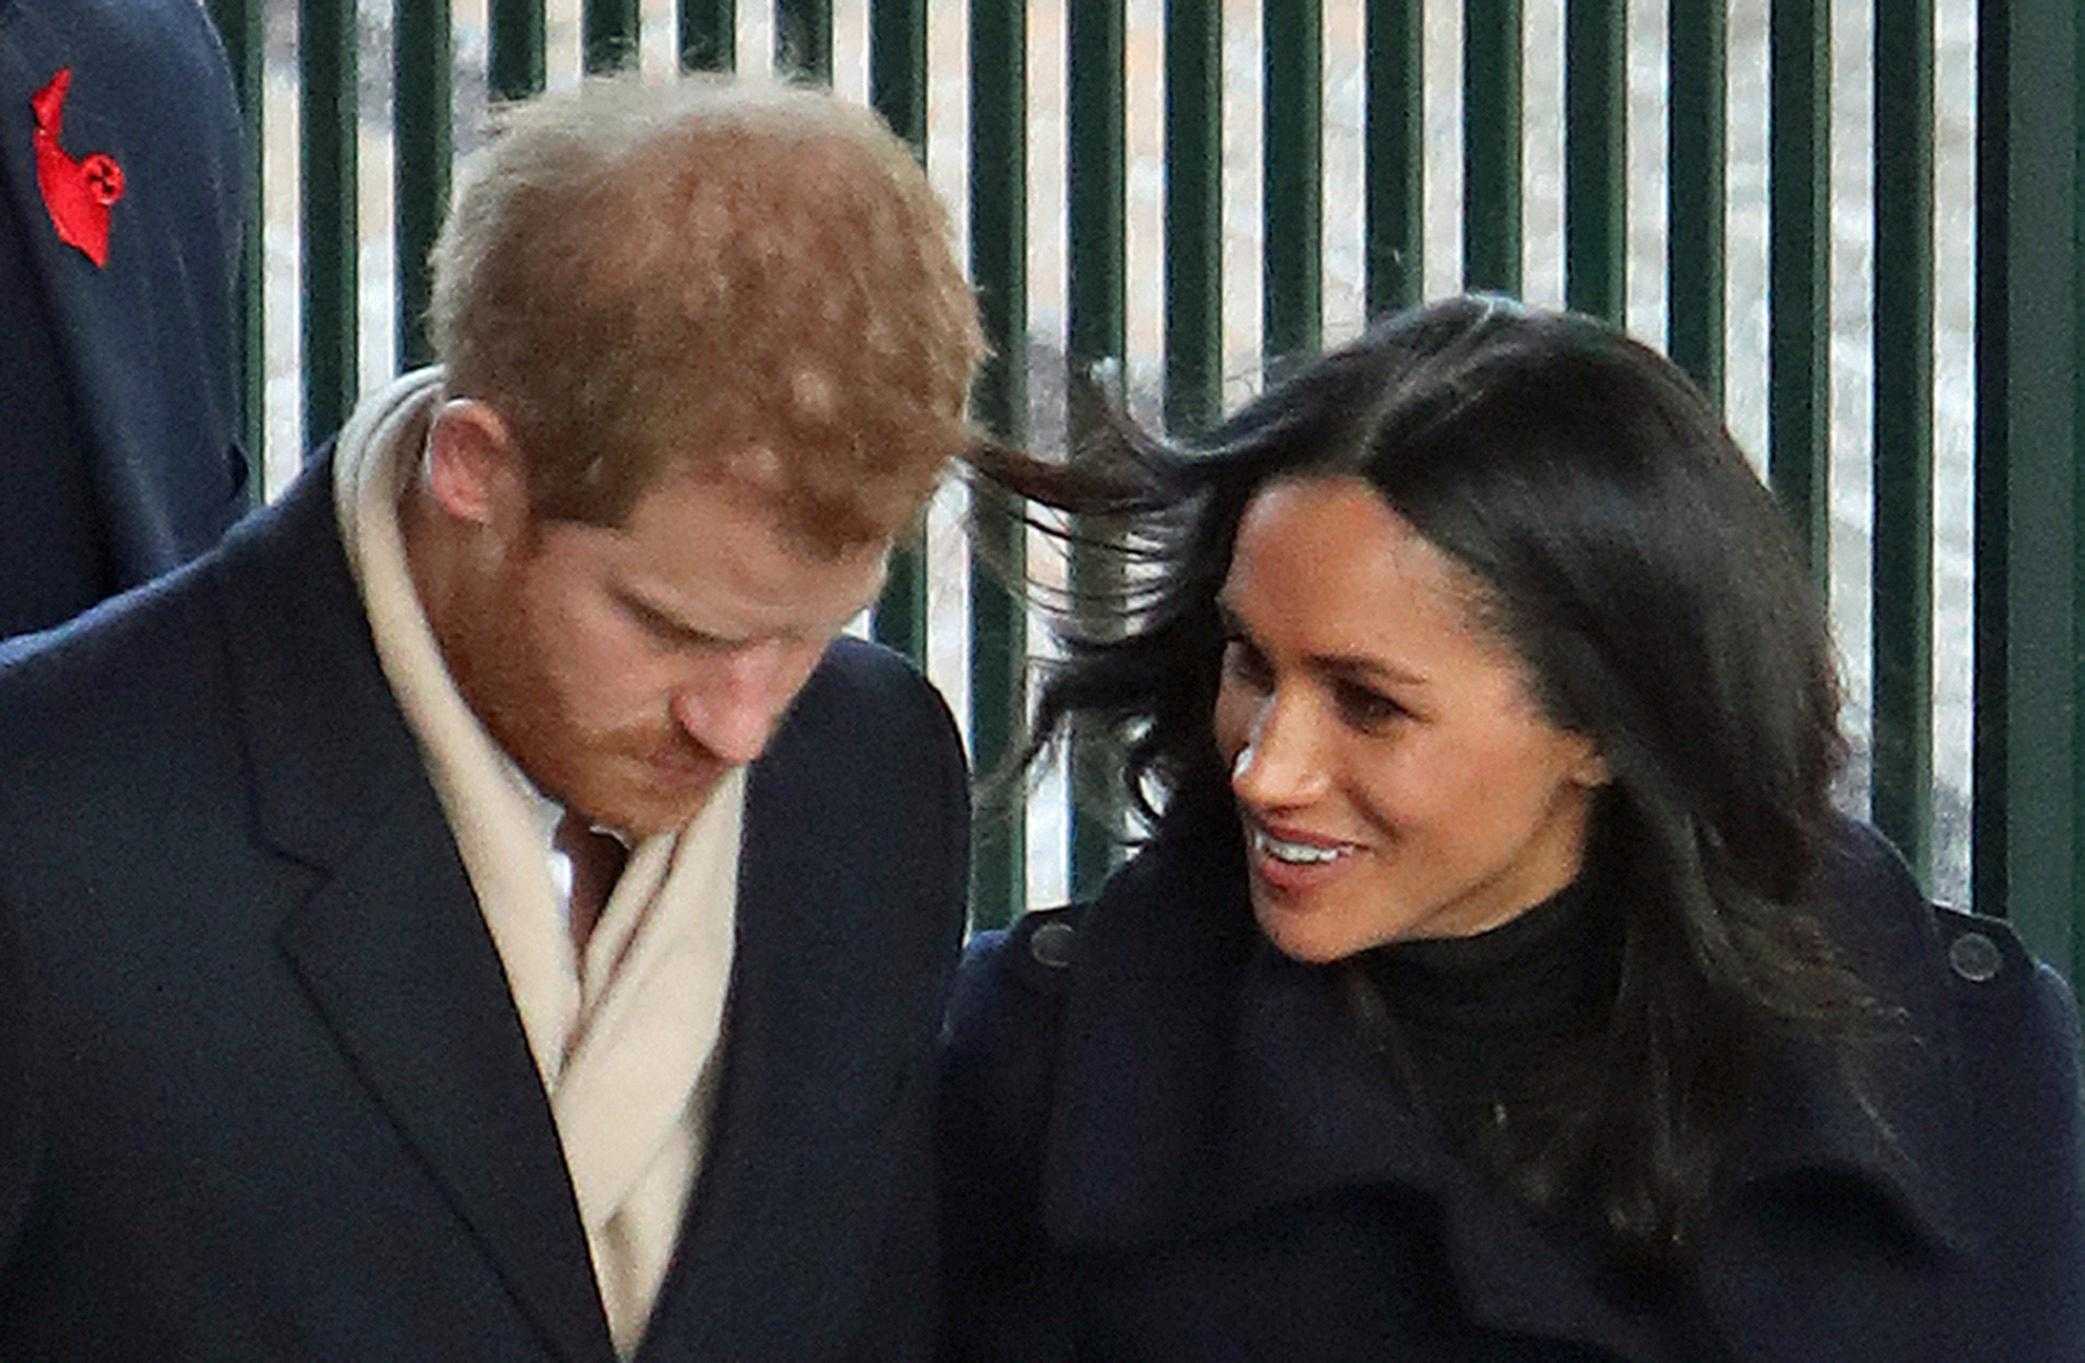 Britain's Prince Harry and Meghan Markle arrive at Nottingham Station in Nottingham England ahead of their first official engagement together Friday Dec. 1, 2017.  This is the couples  first public event since the announcement of their engagement on Monday. (Steve Parsons/PA via AP)